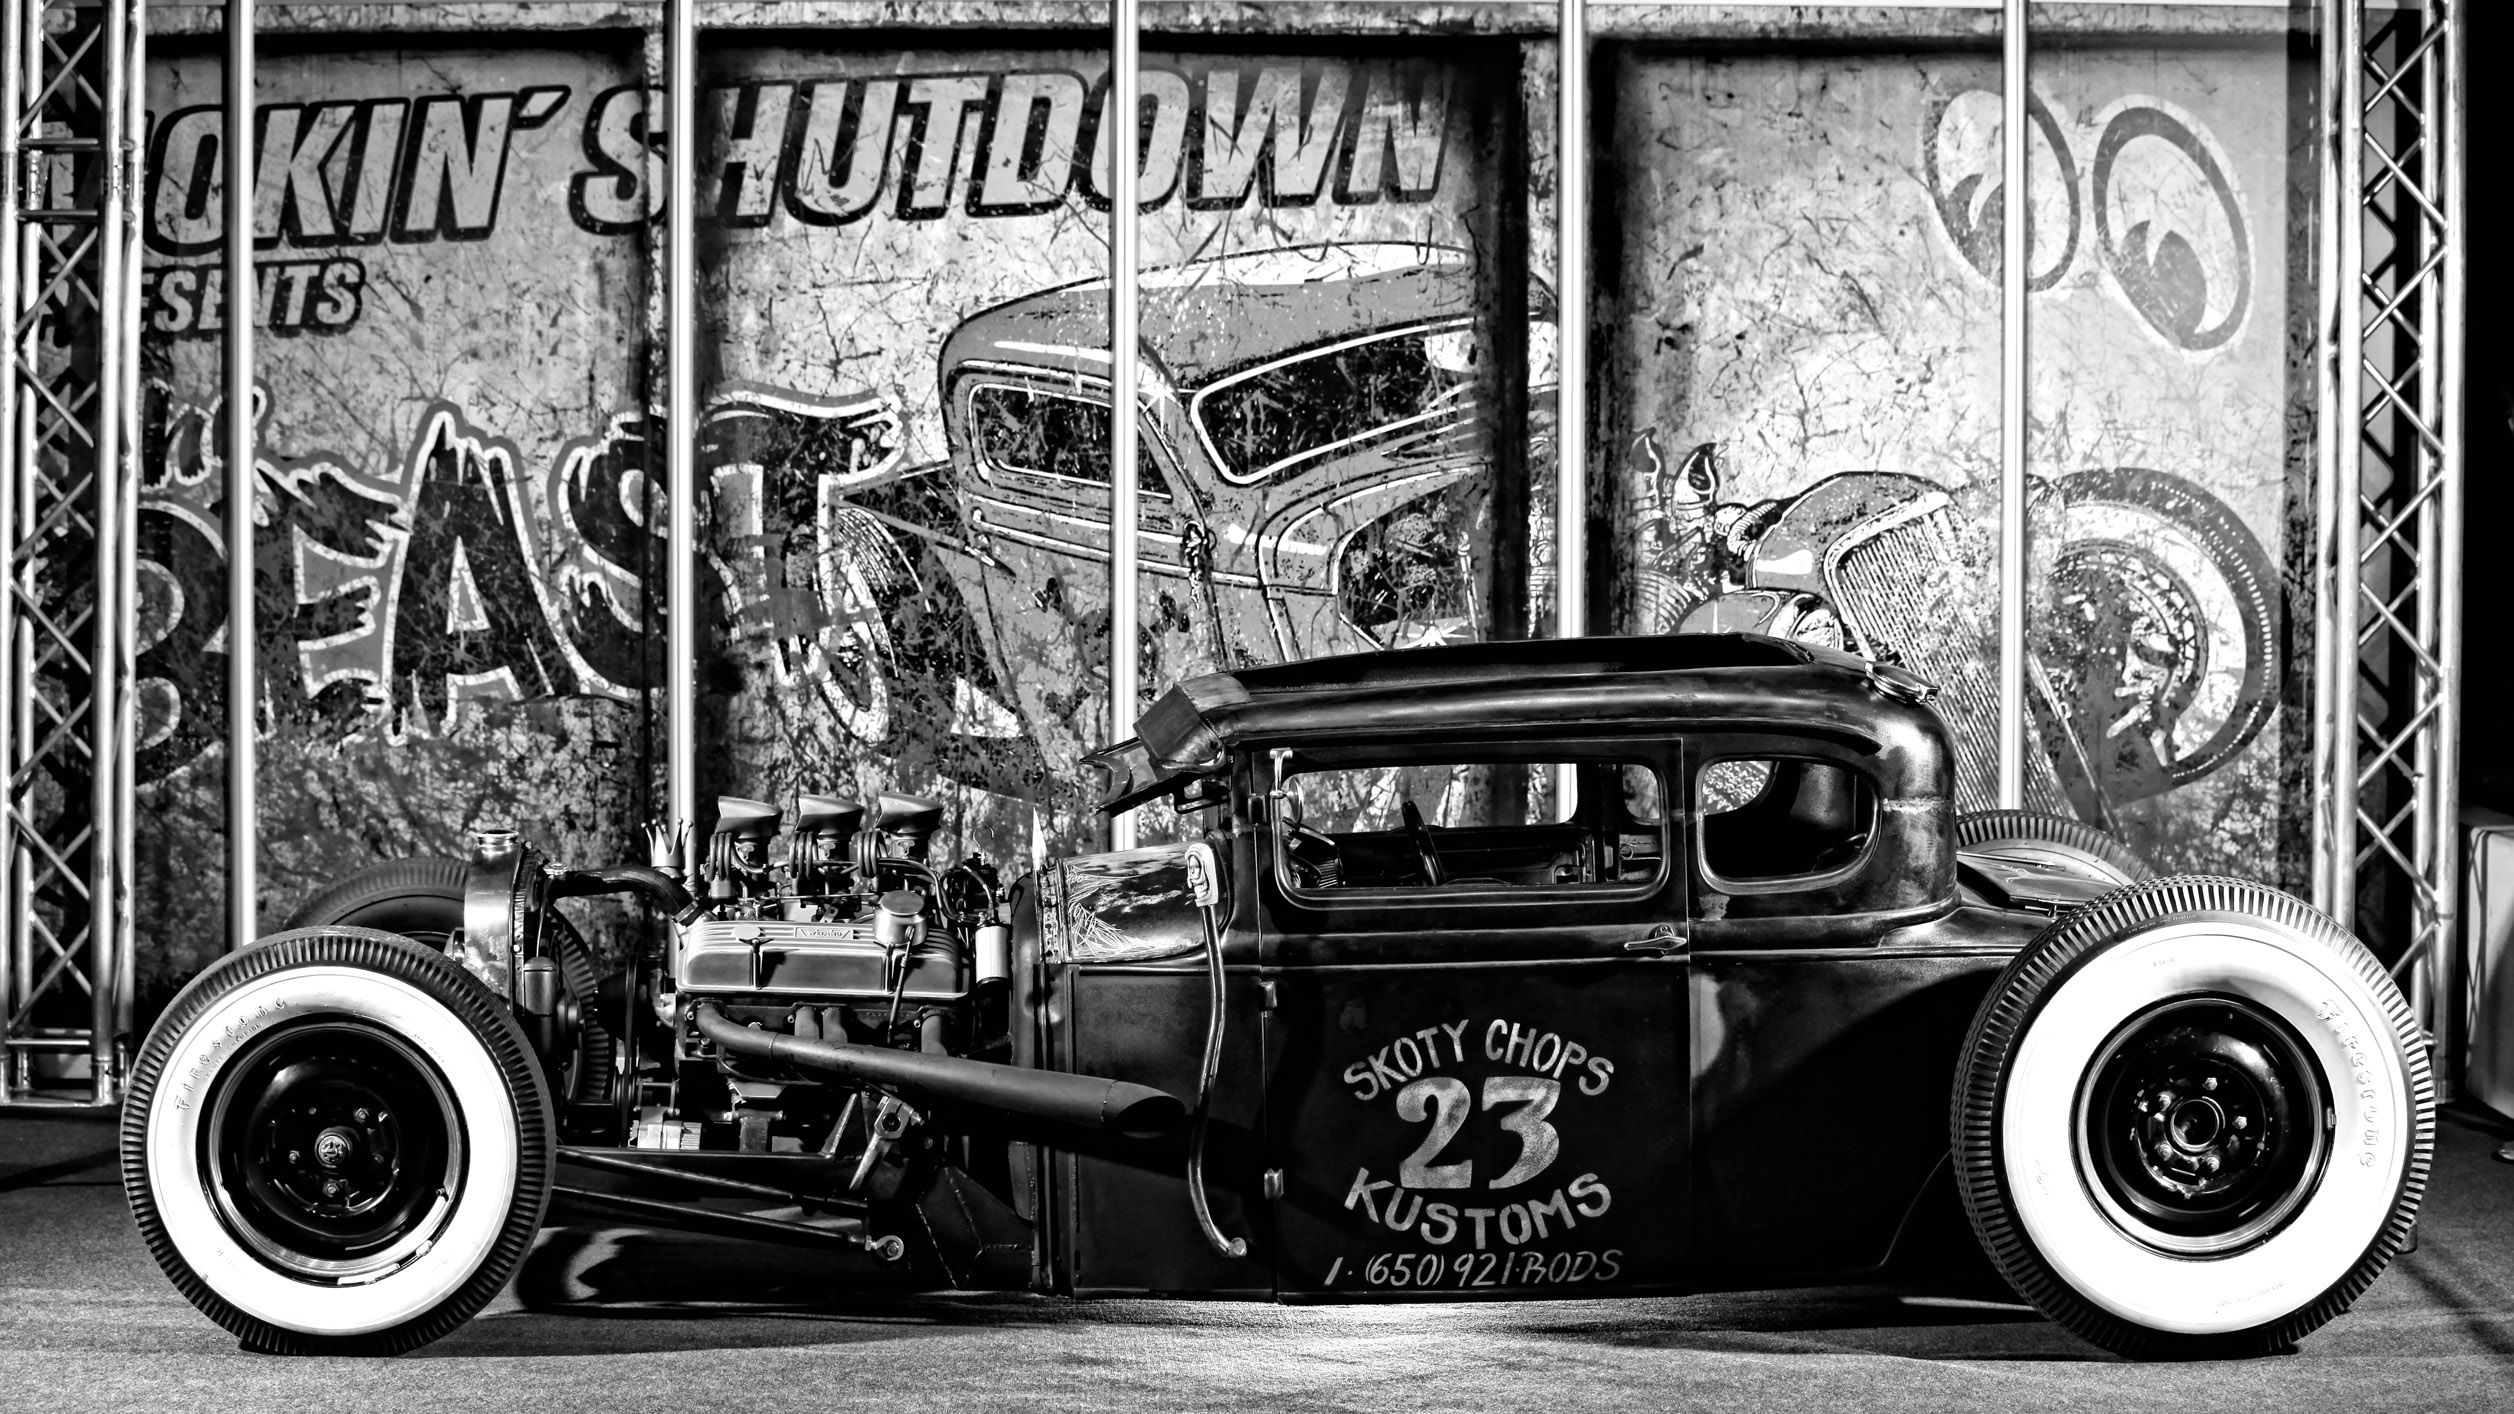 A Rod Wallpaper Hot Rods Hot Rods Cars Vintage Cars